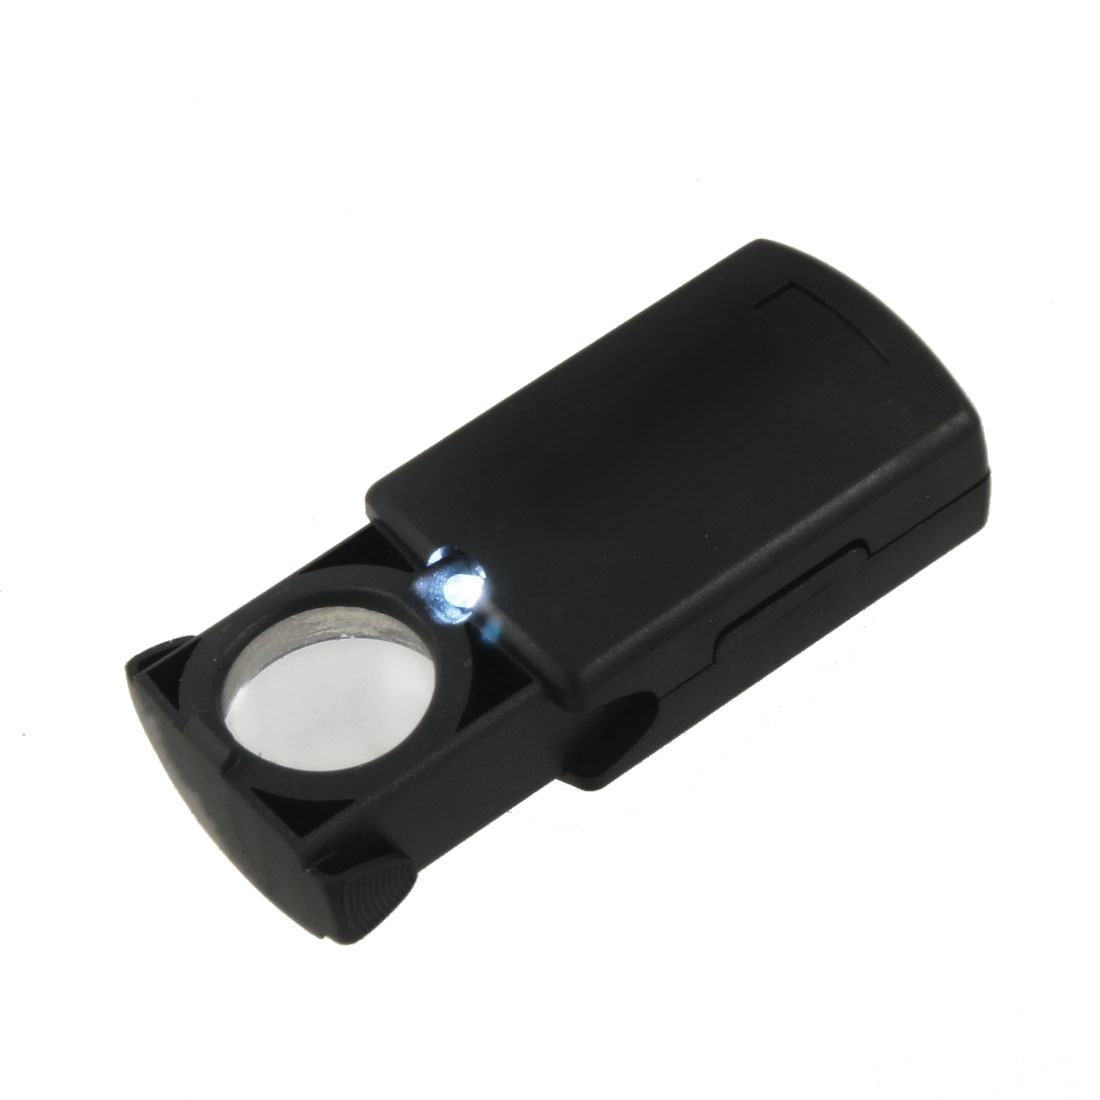 Black Foldable Gemstone Jewelry Loupe Magnifier w LED Light